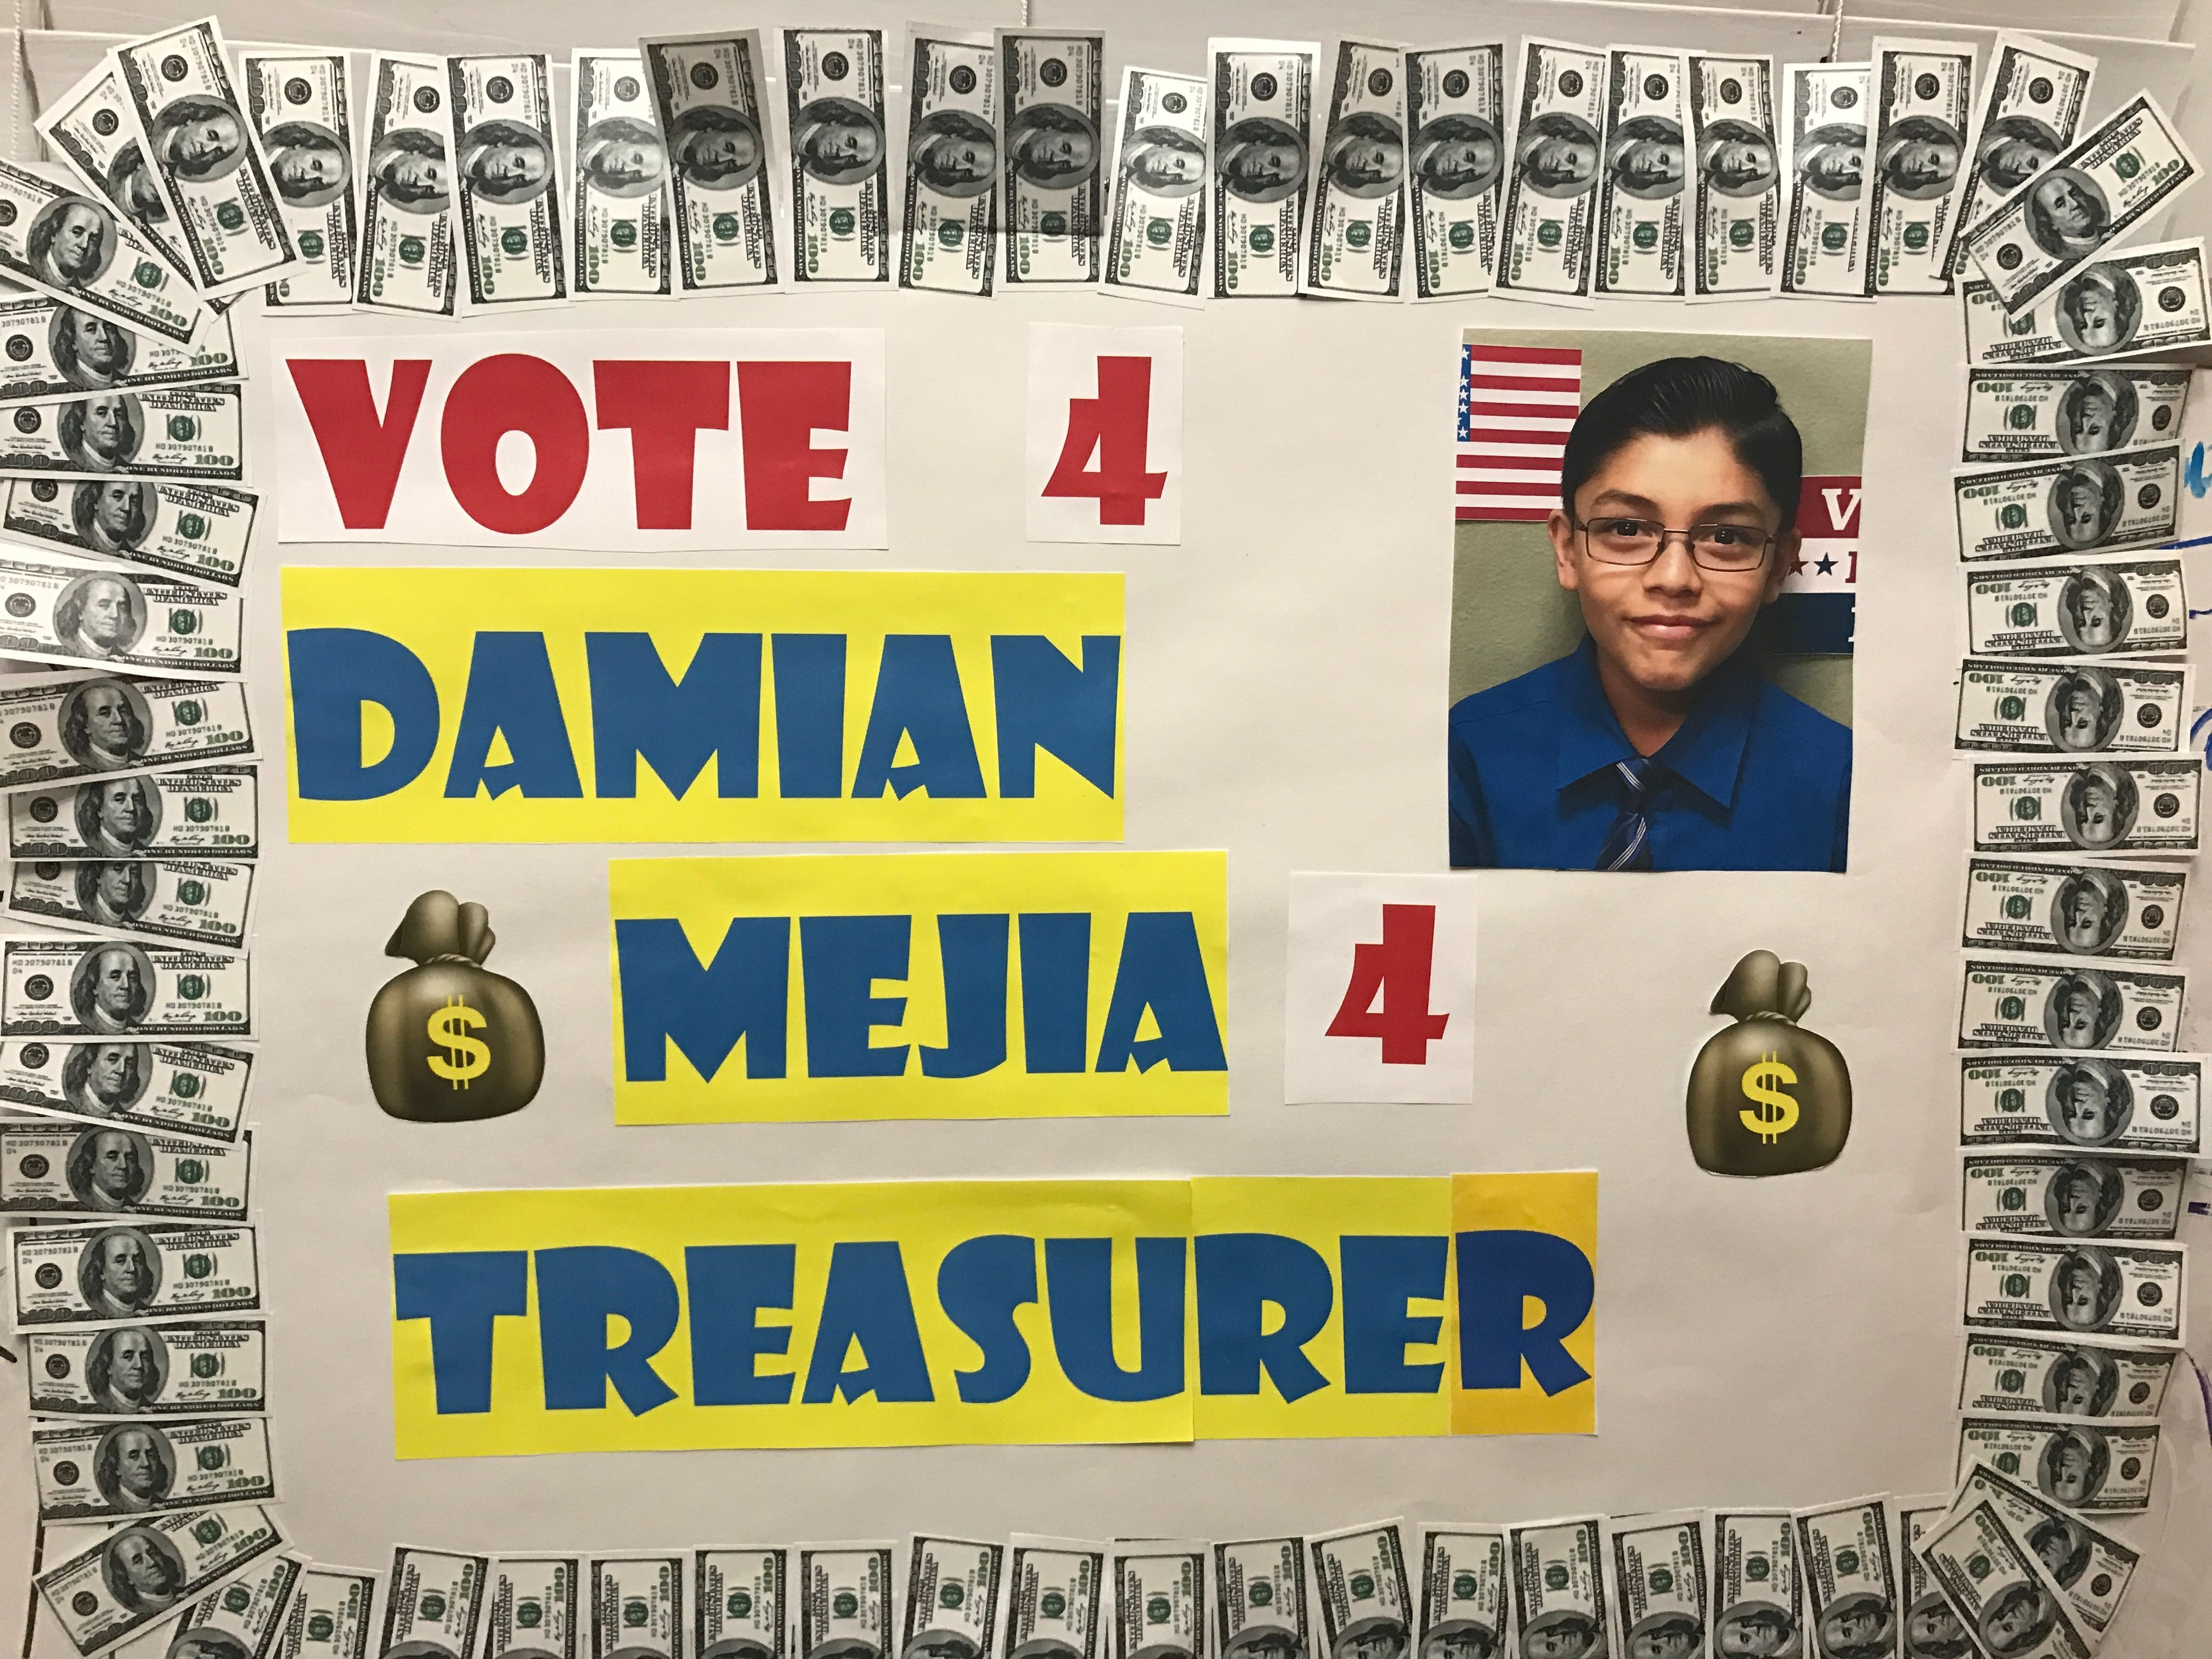 Student Council Election Poster 4thgrade Treasurer Student Council Campaign Student Council School Projects